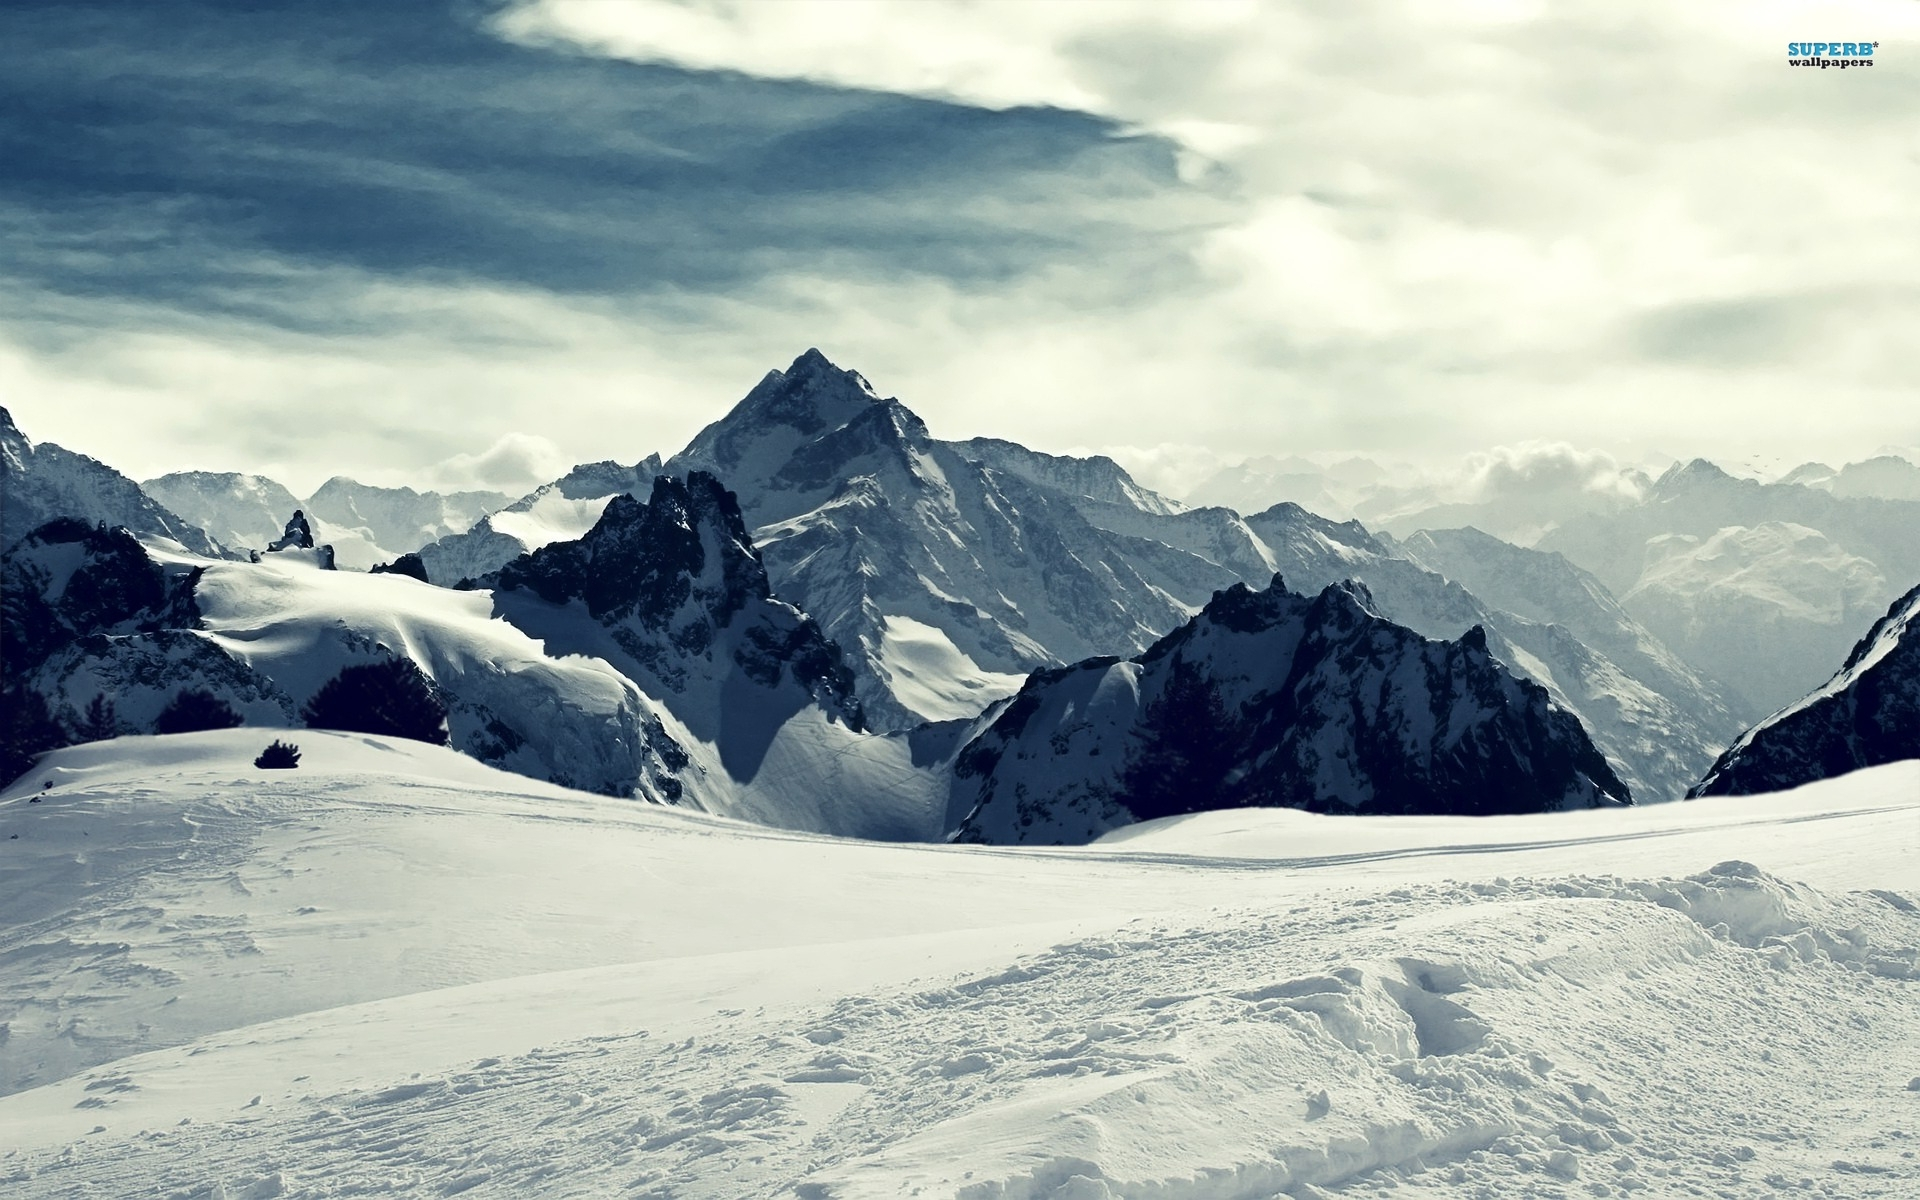 snowy mountains winter wallpaper. - media file | pixelstalk